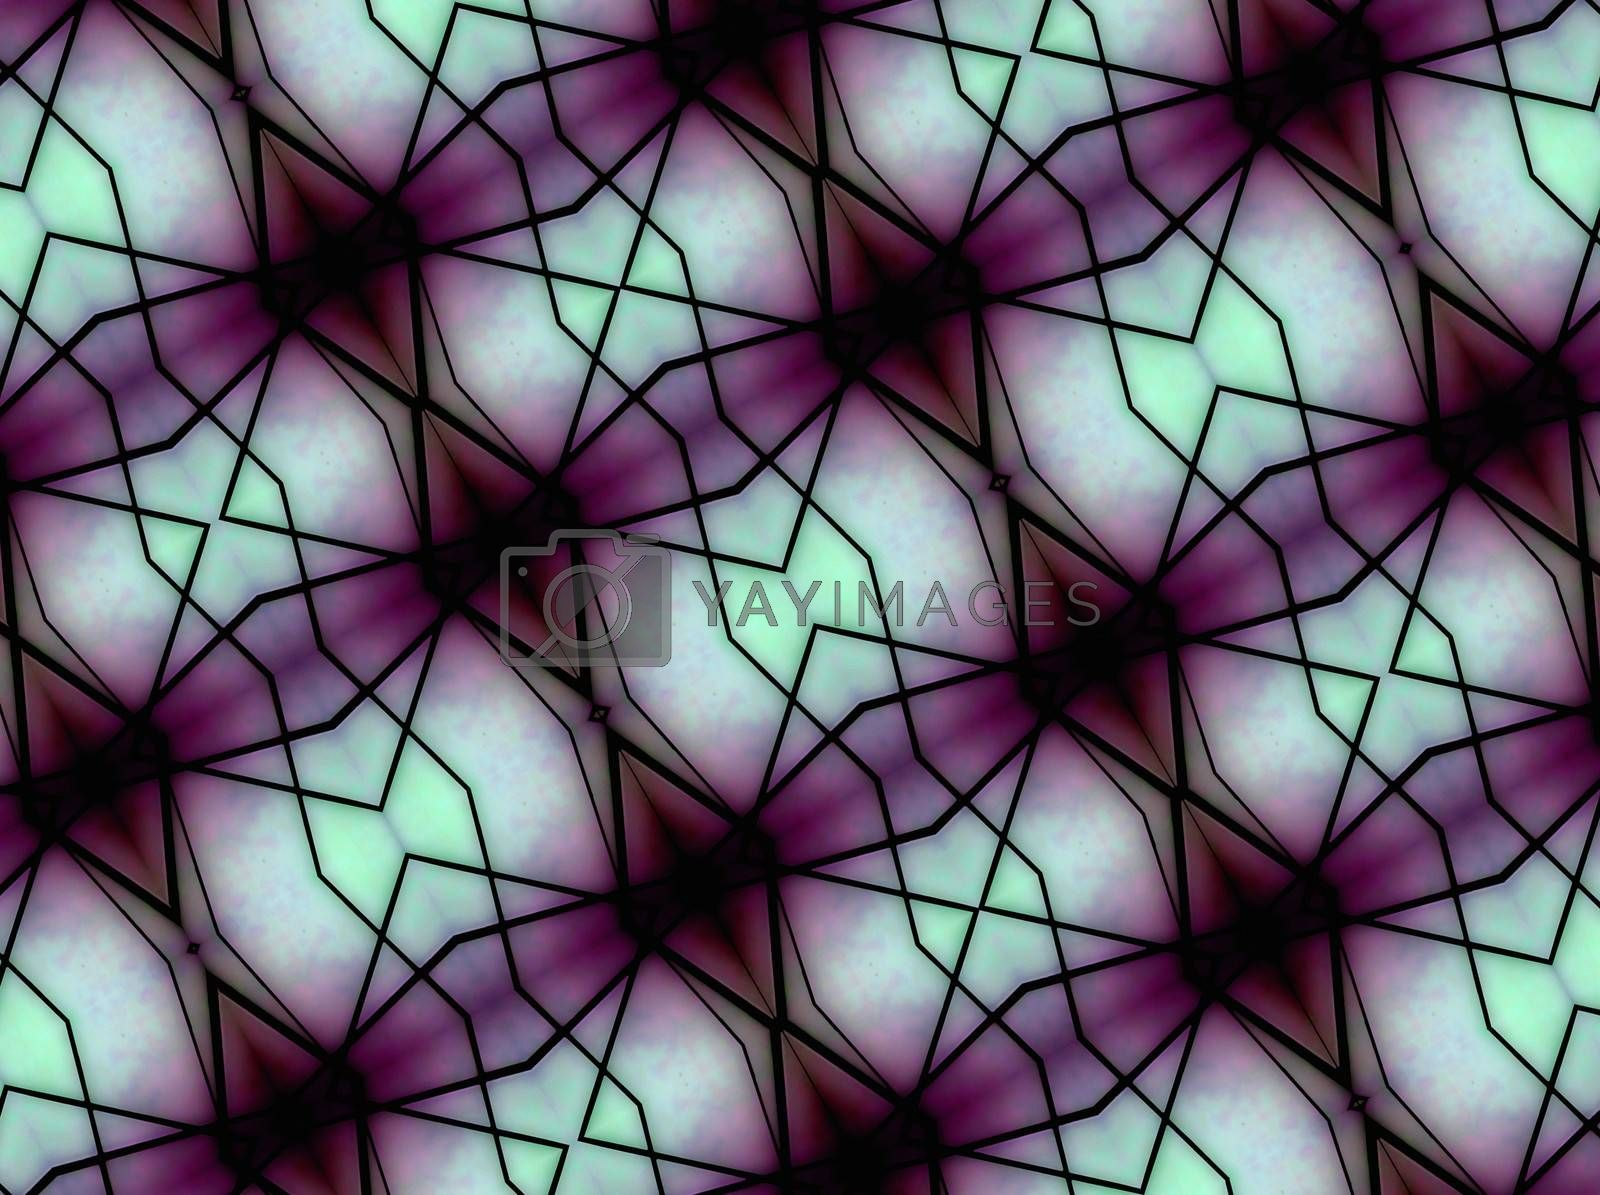 Geometric space background in magenta and pale blue tones also useful as pattern.